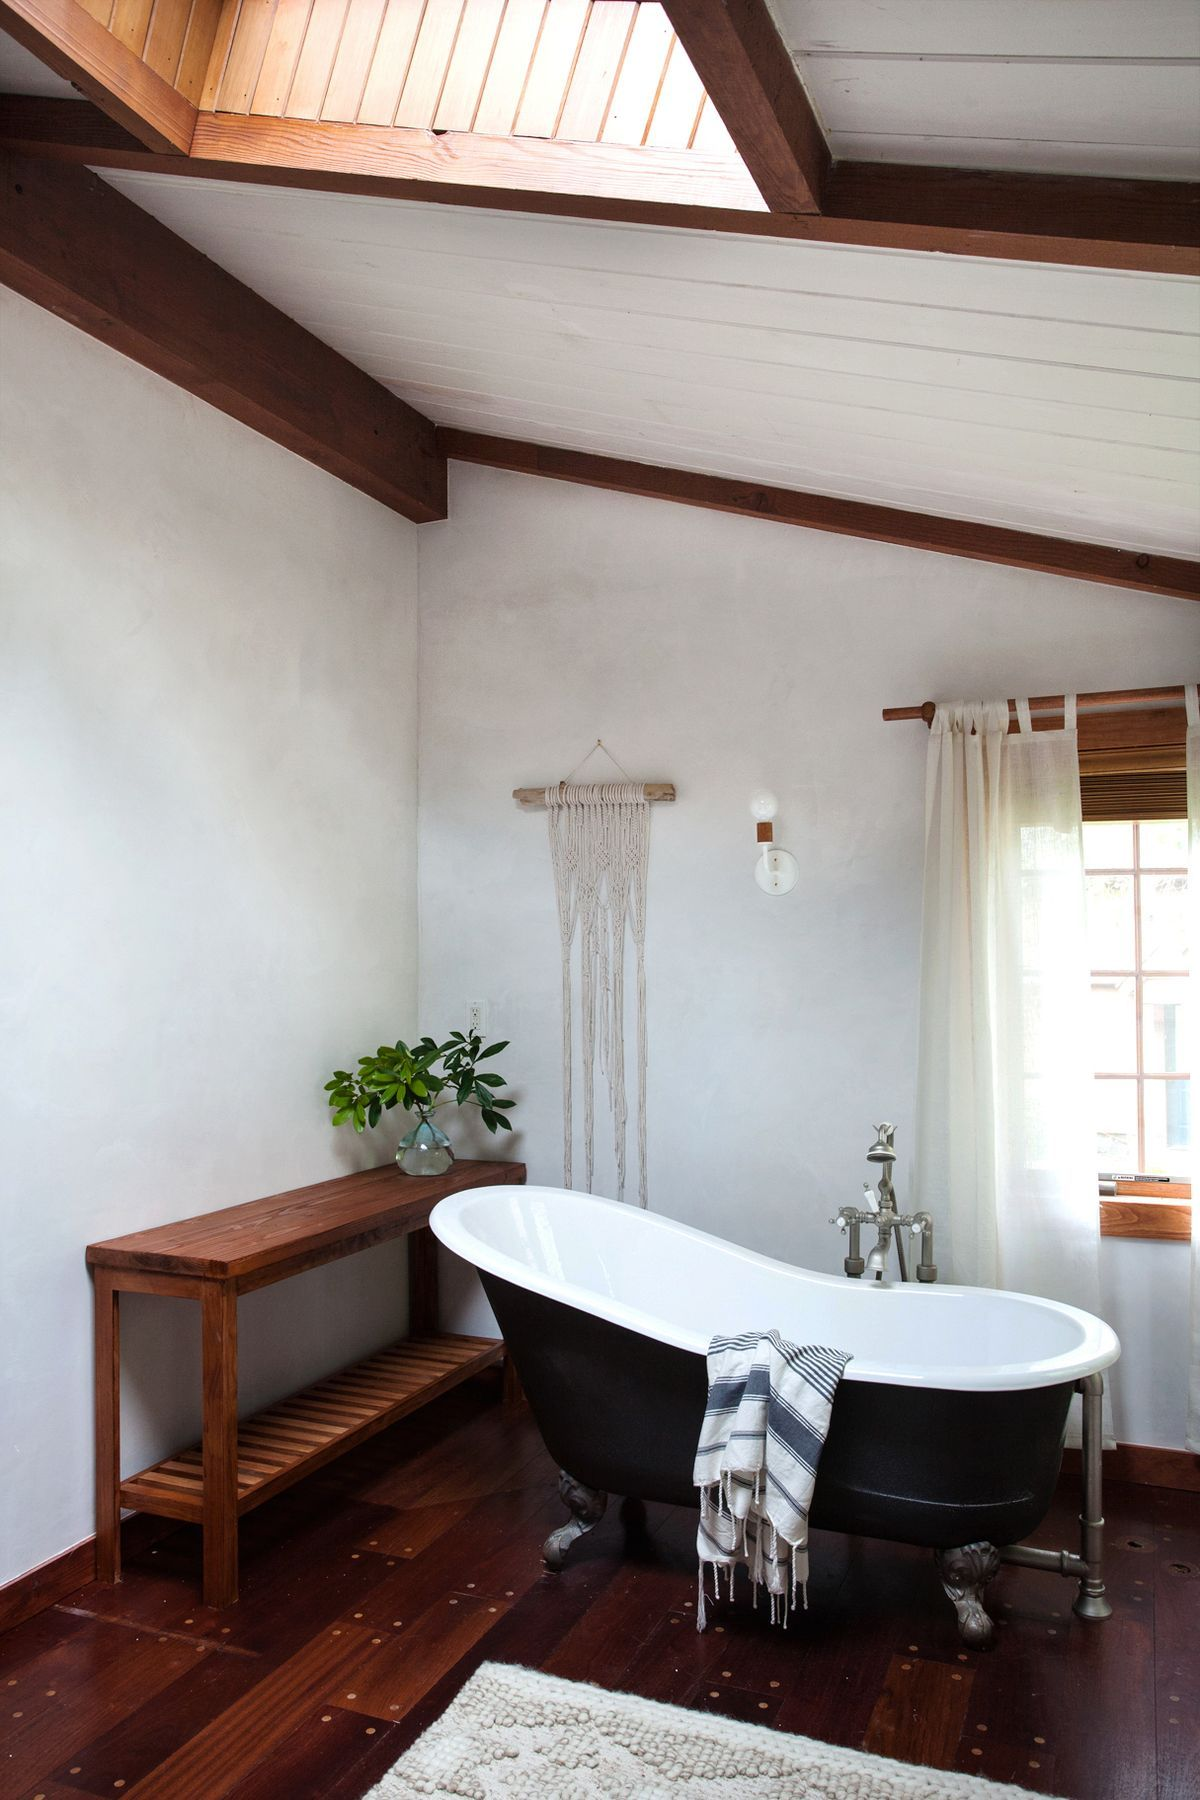 Stunning Wood And White Bathroom With A Shiplap Ceiling, Dramatic